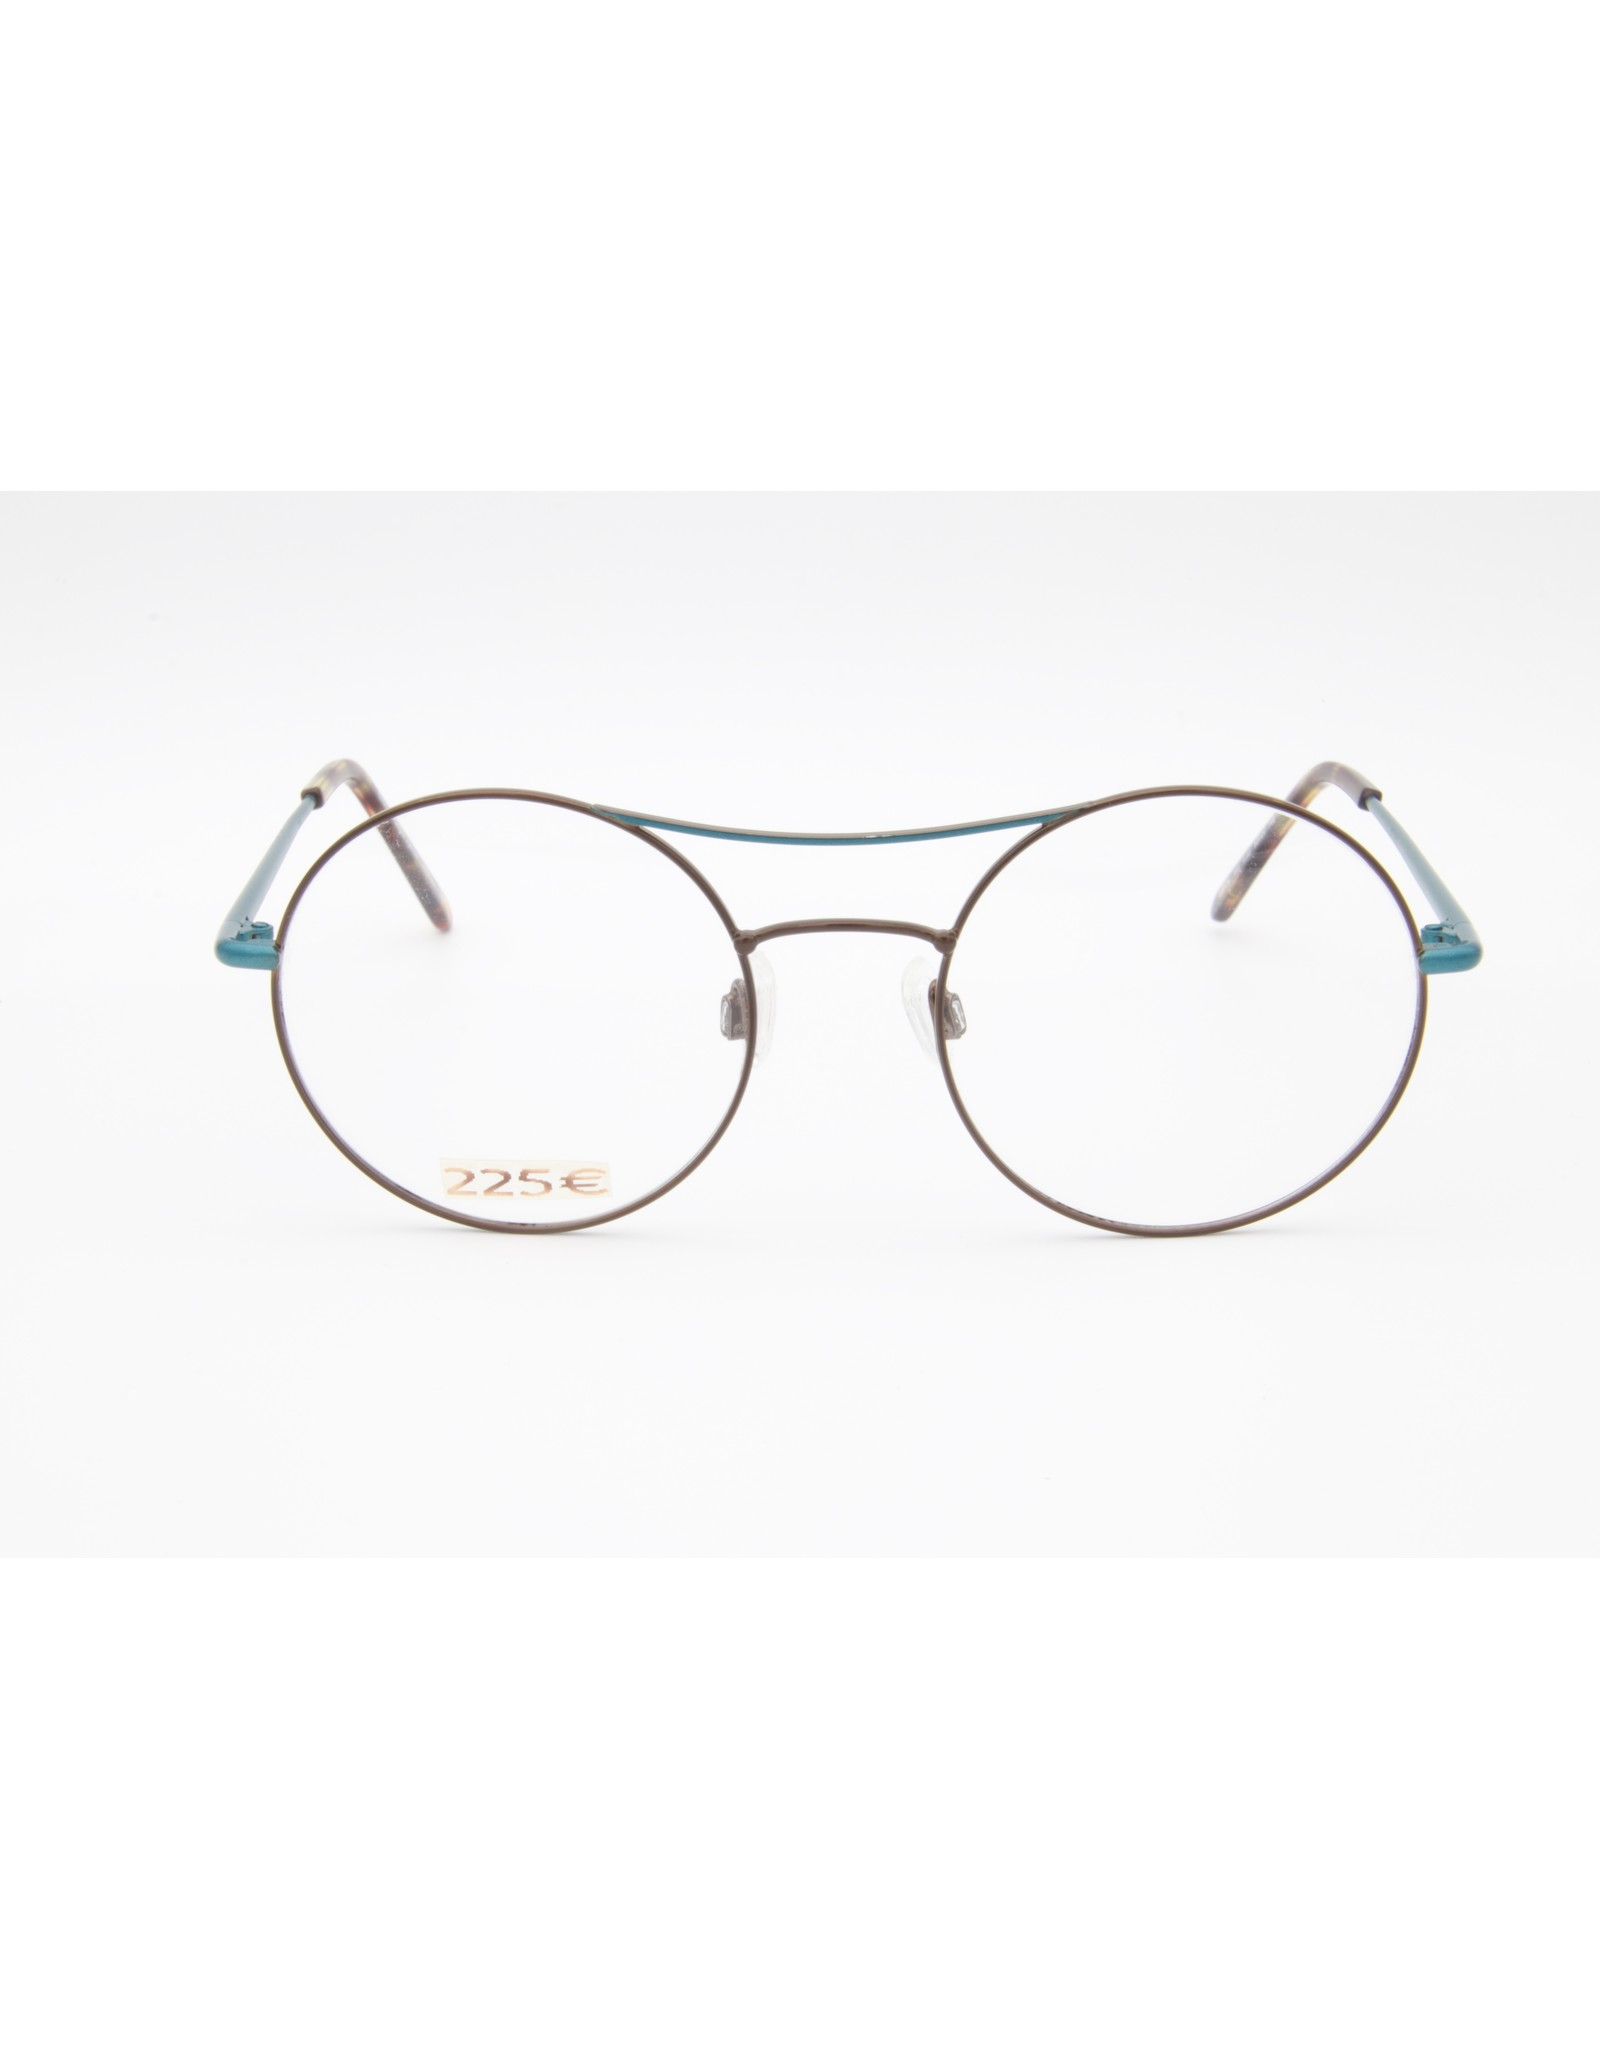 Binoche Binoche 184 c03 (brown-blue)